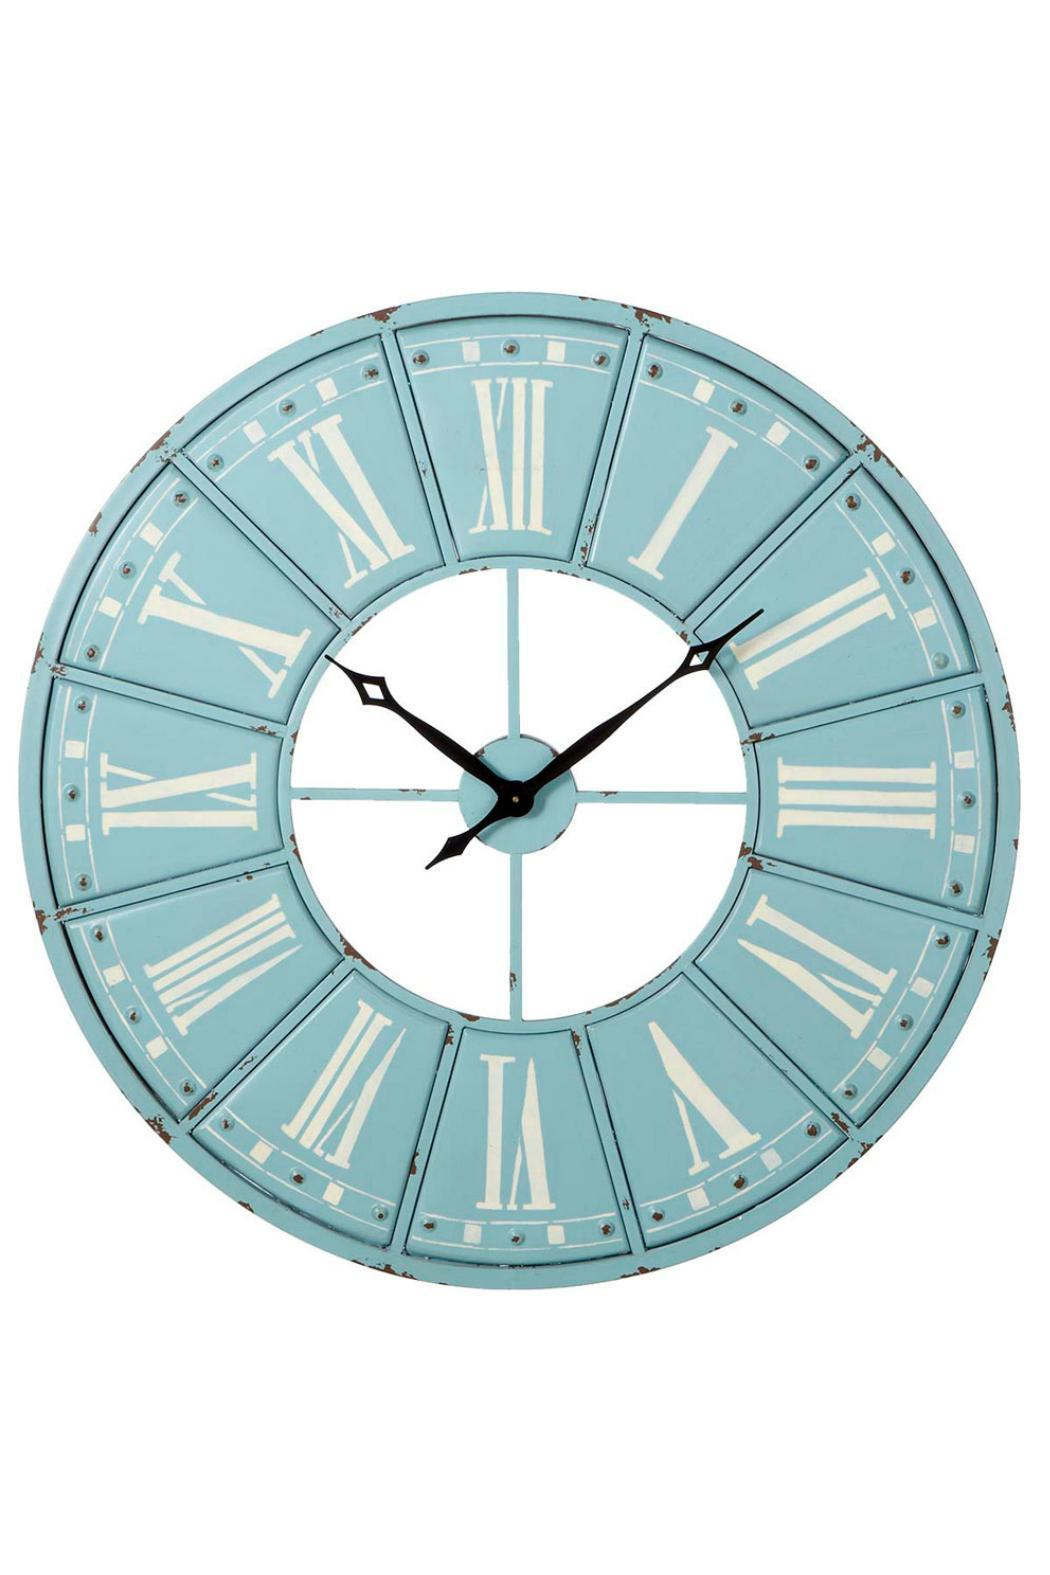 Statement Wall Clocks Midwest Cbk Blue Statement Clock From Canada By James